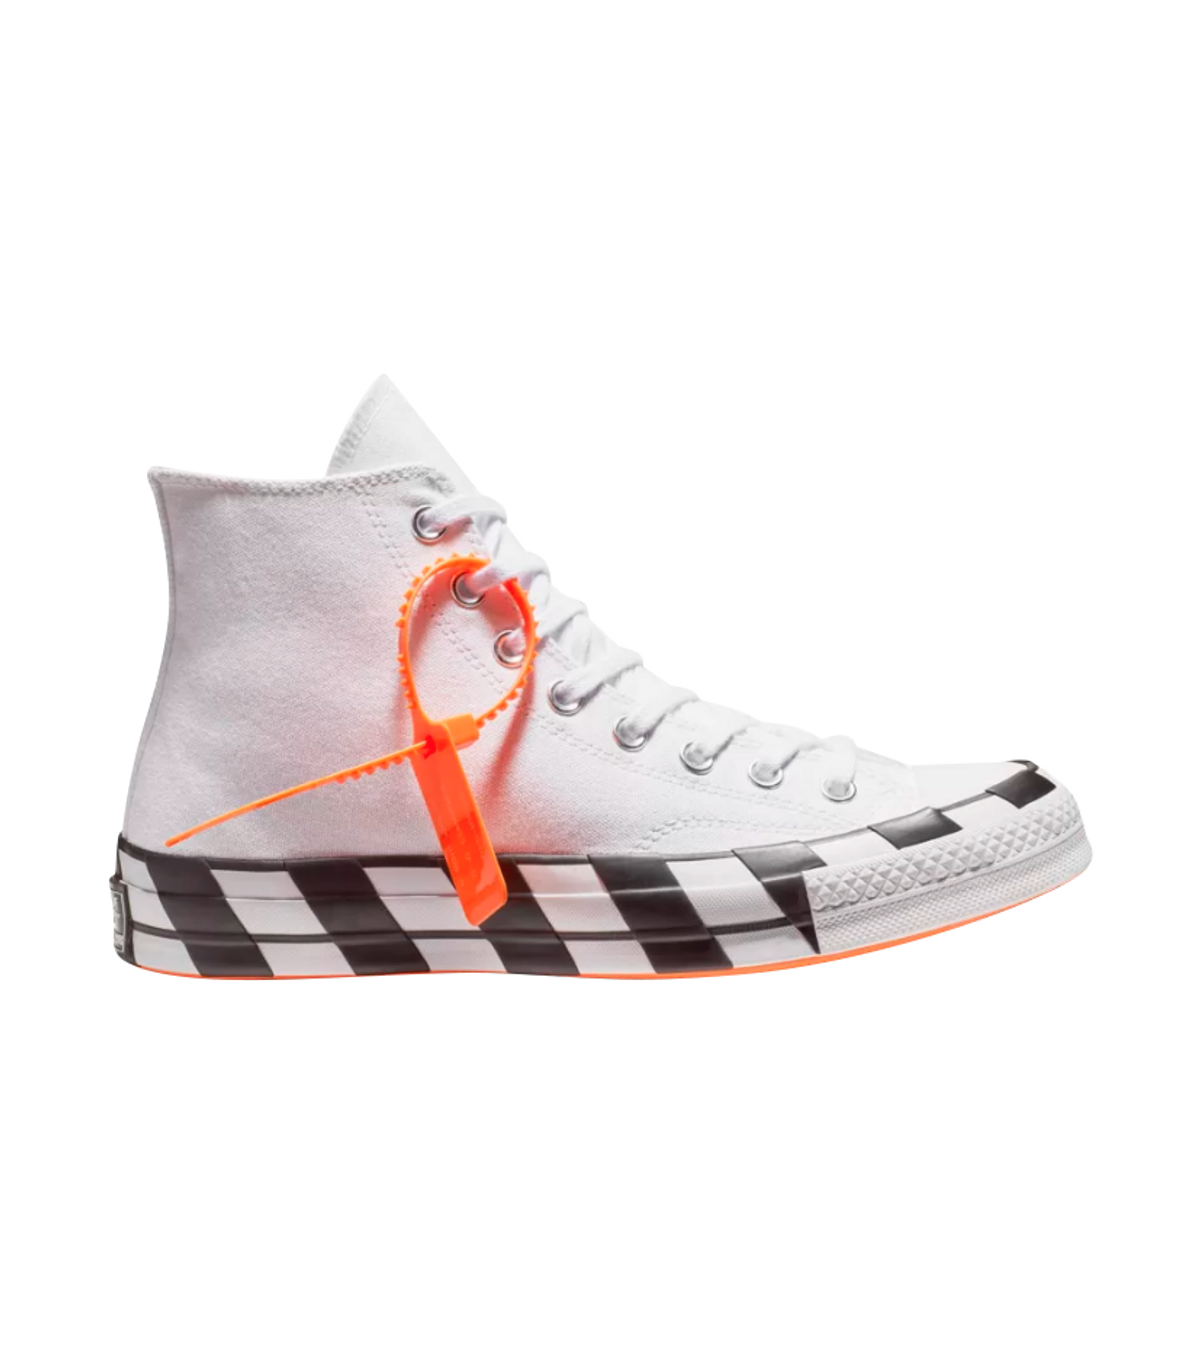 Converse × Nike × Off White Off White X Converse Chuck Taylor All Star 70s  Hi Size 7 $360